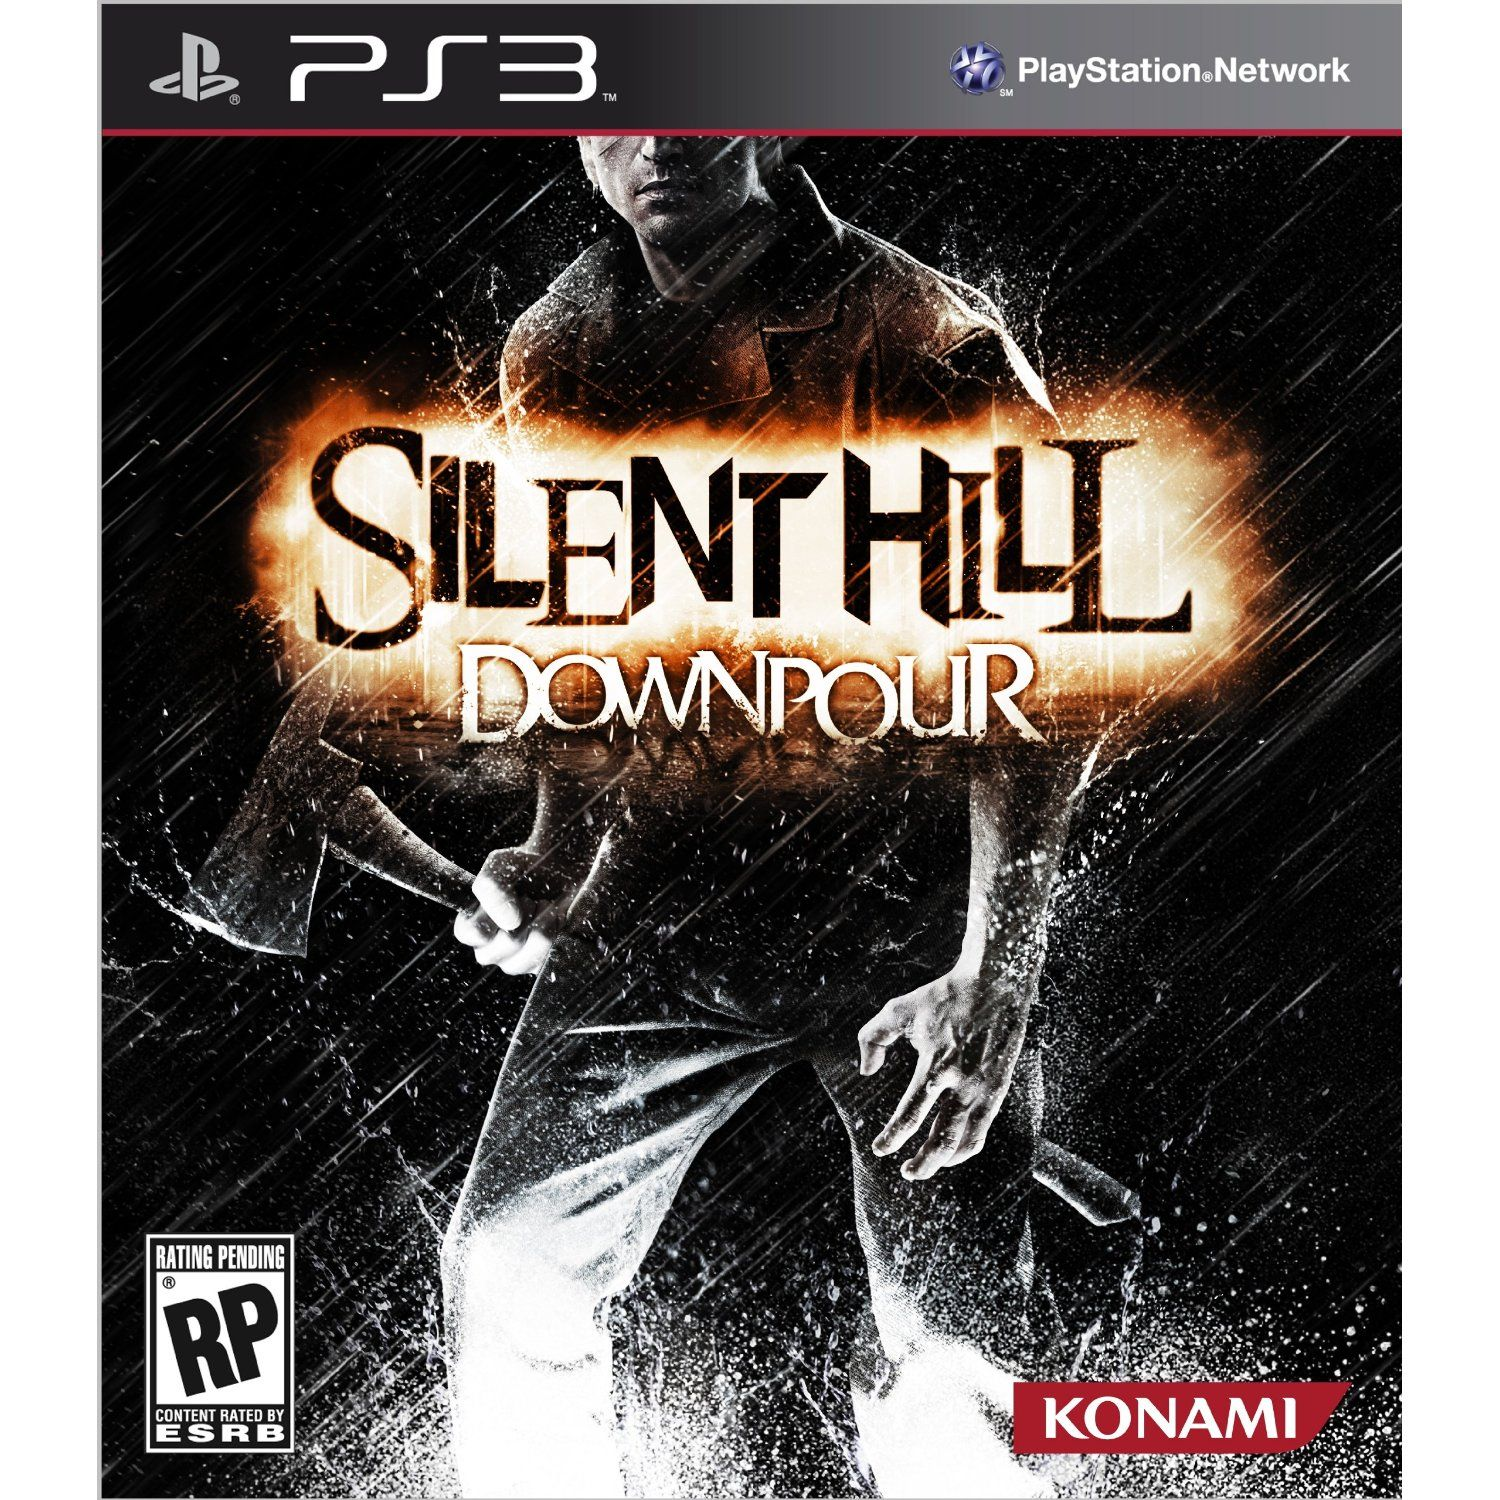 Silent Hill Downpour Sillent Hill Juegos Xbox Juegos